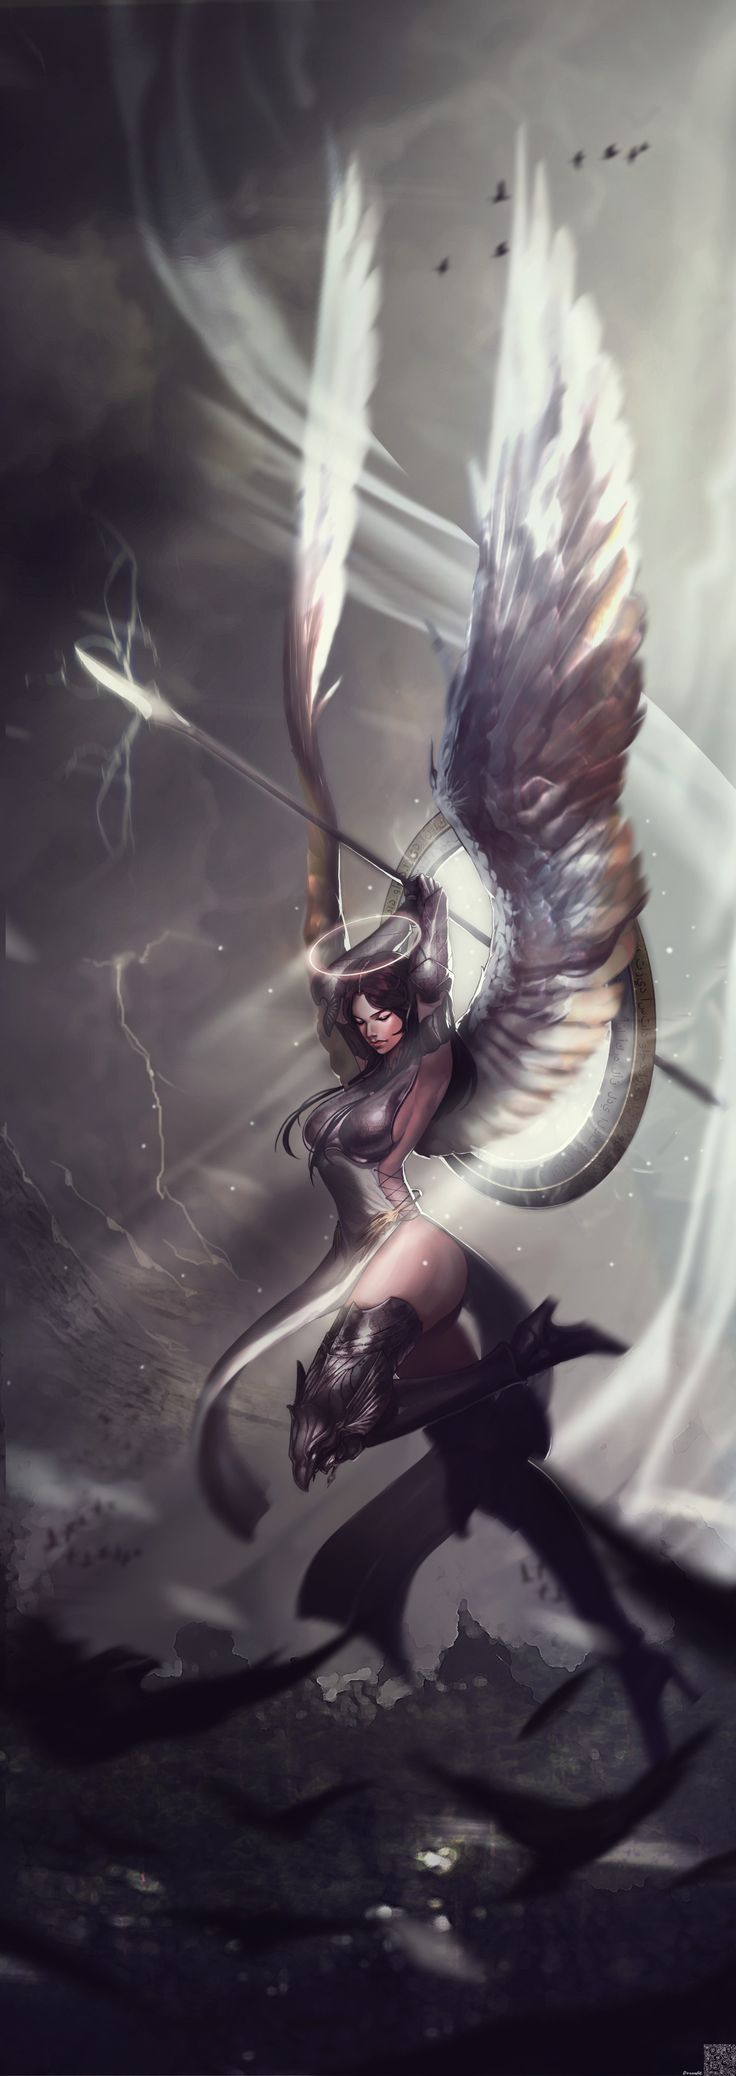 ArtStation - Angel, young yun kim